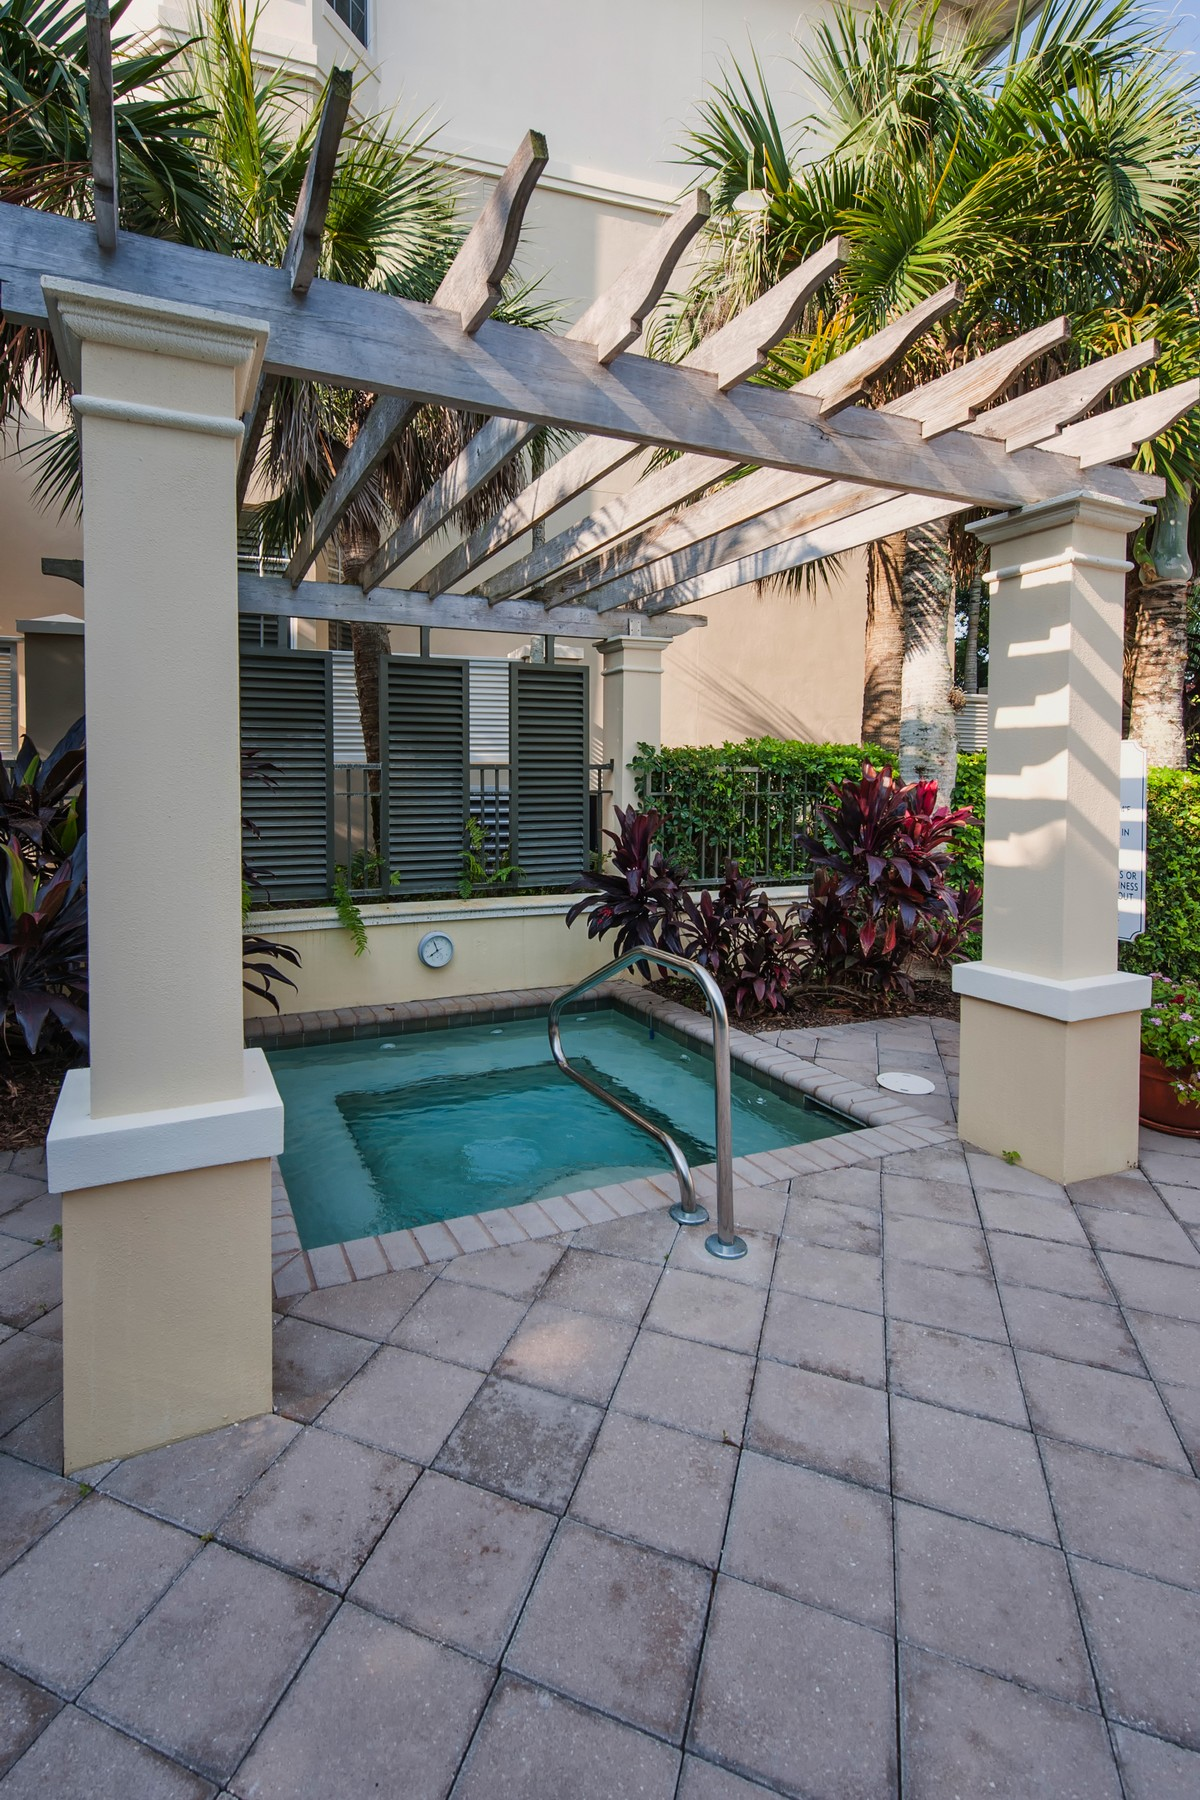 Additional photo for property listing at Resort Style Living in Palm Island Plantation 110 Island Plantation Terrace #301 Indian River Shores, Florida 32963 United States